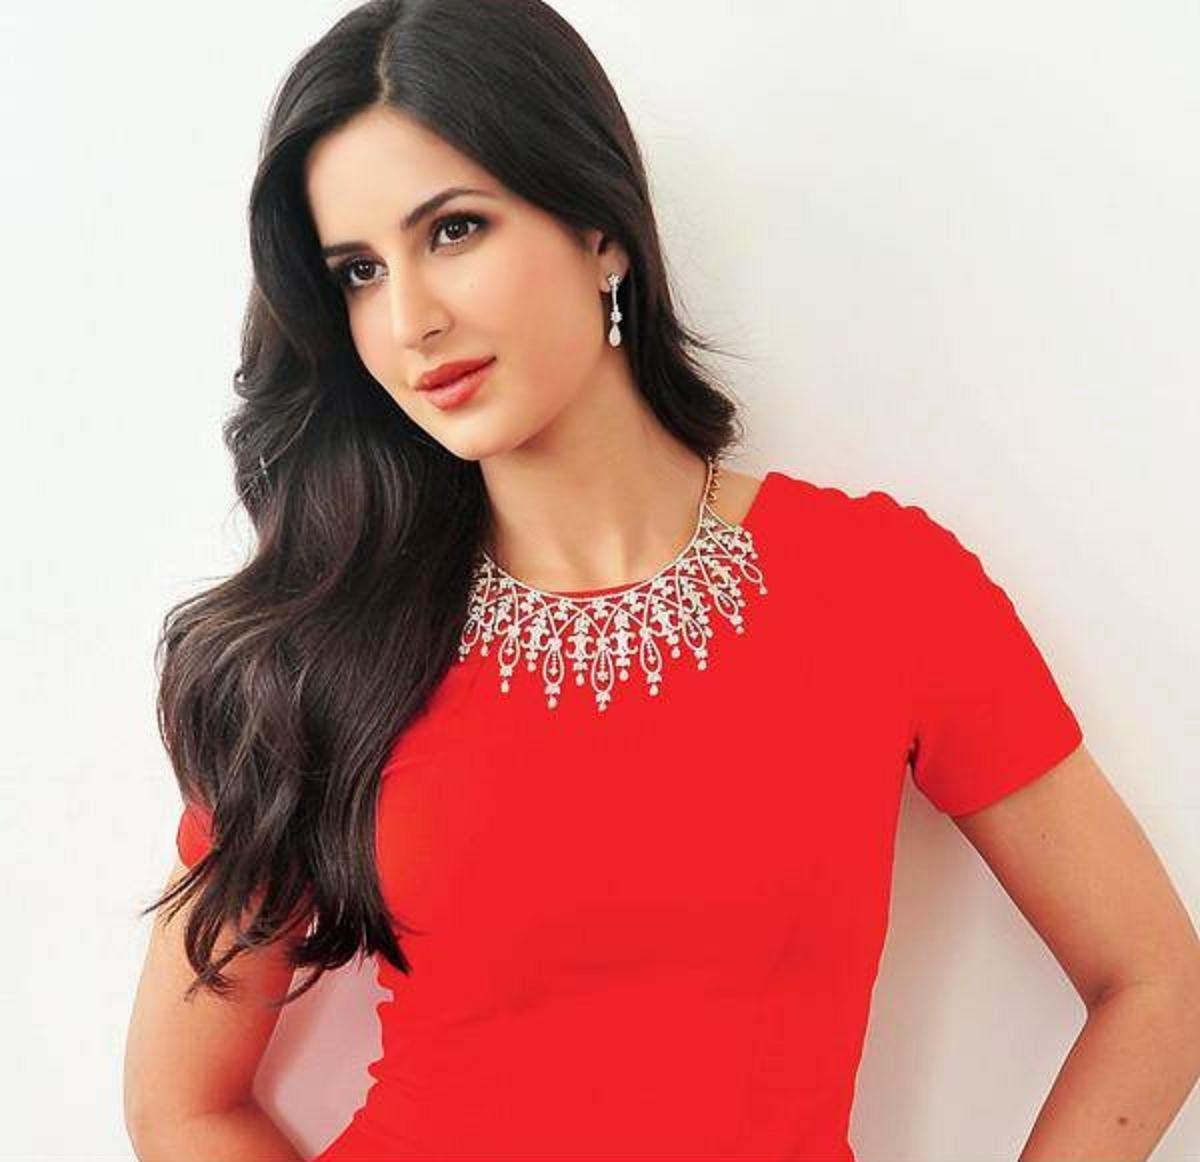 Katrina Kaif Wallpaper For Android Apk Download